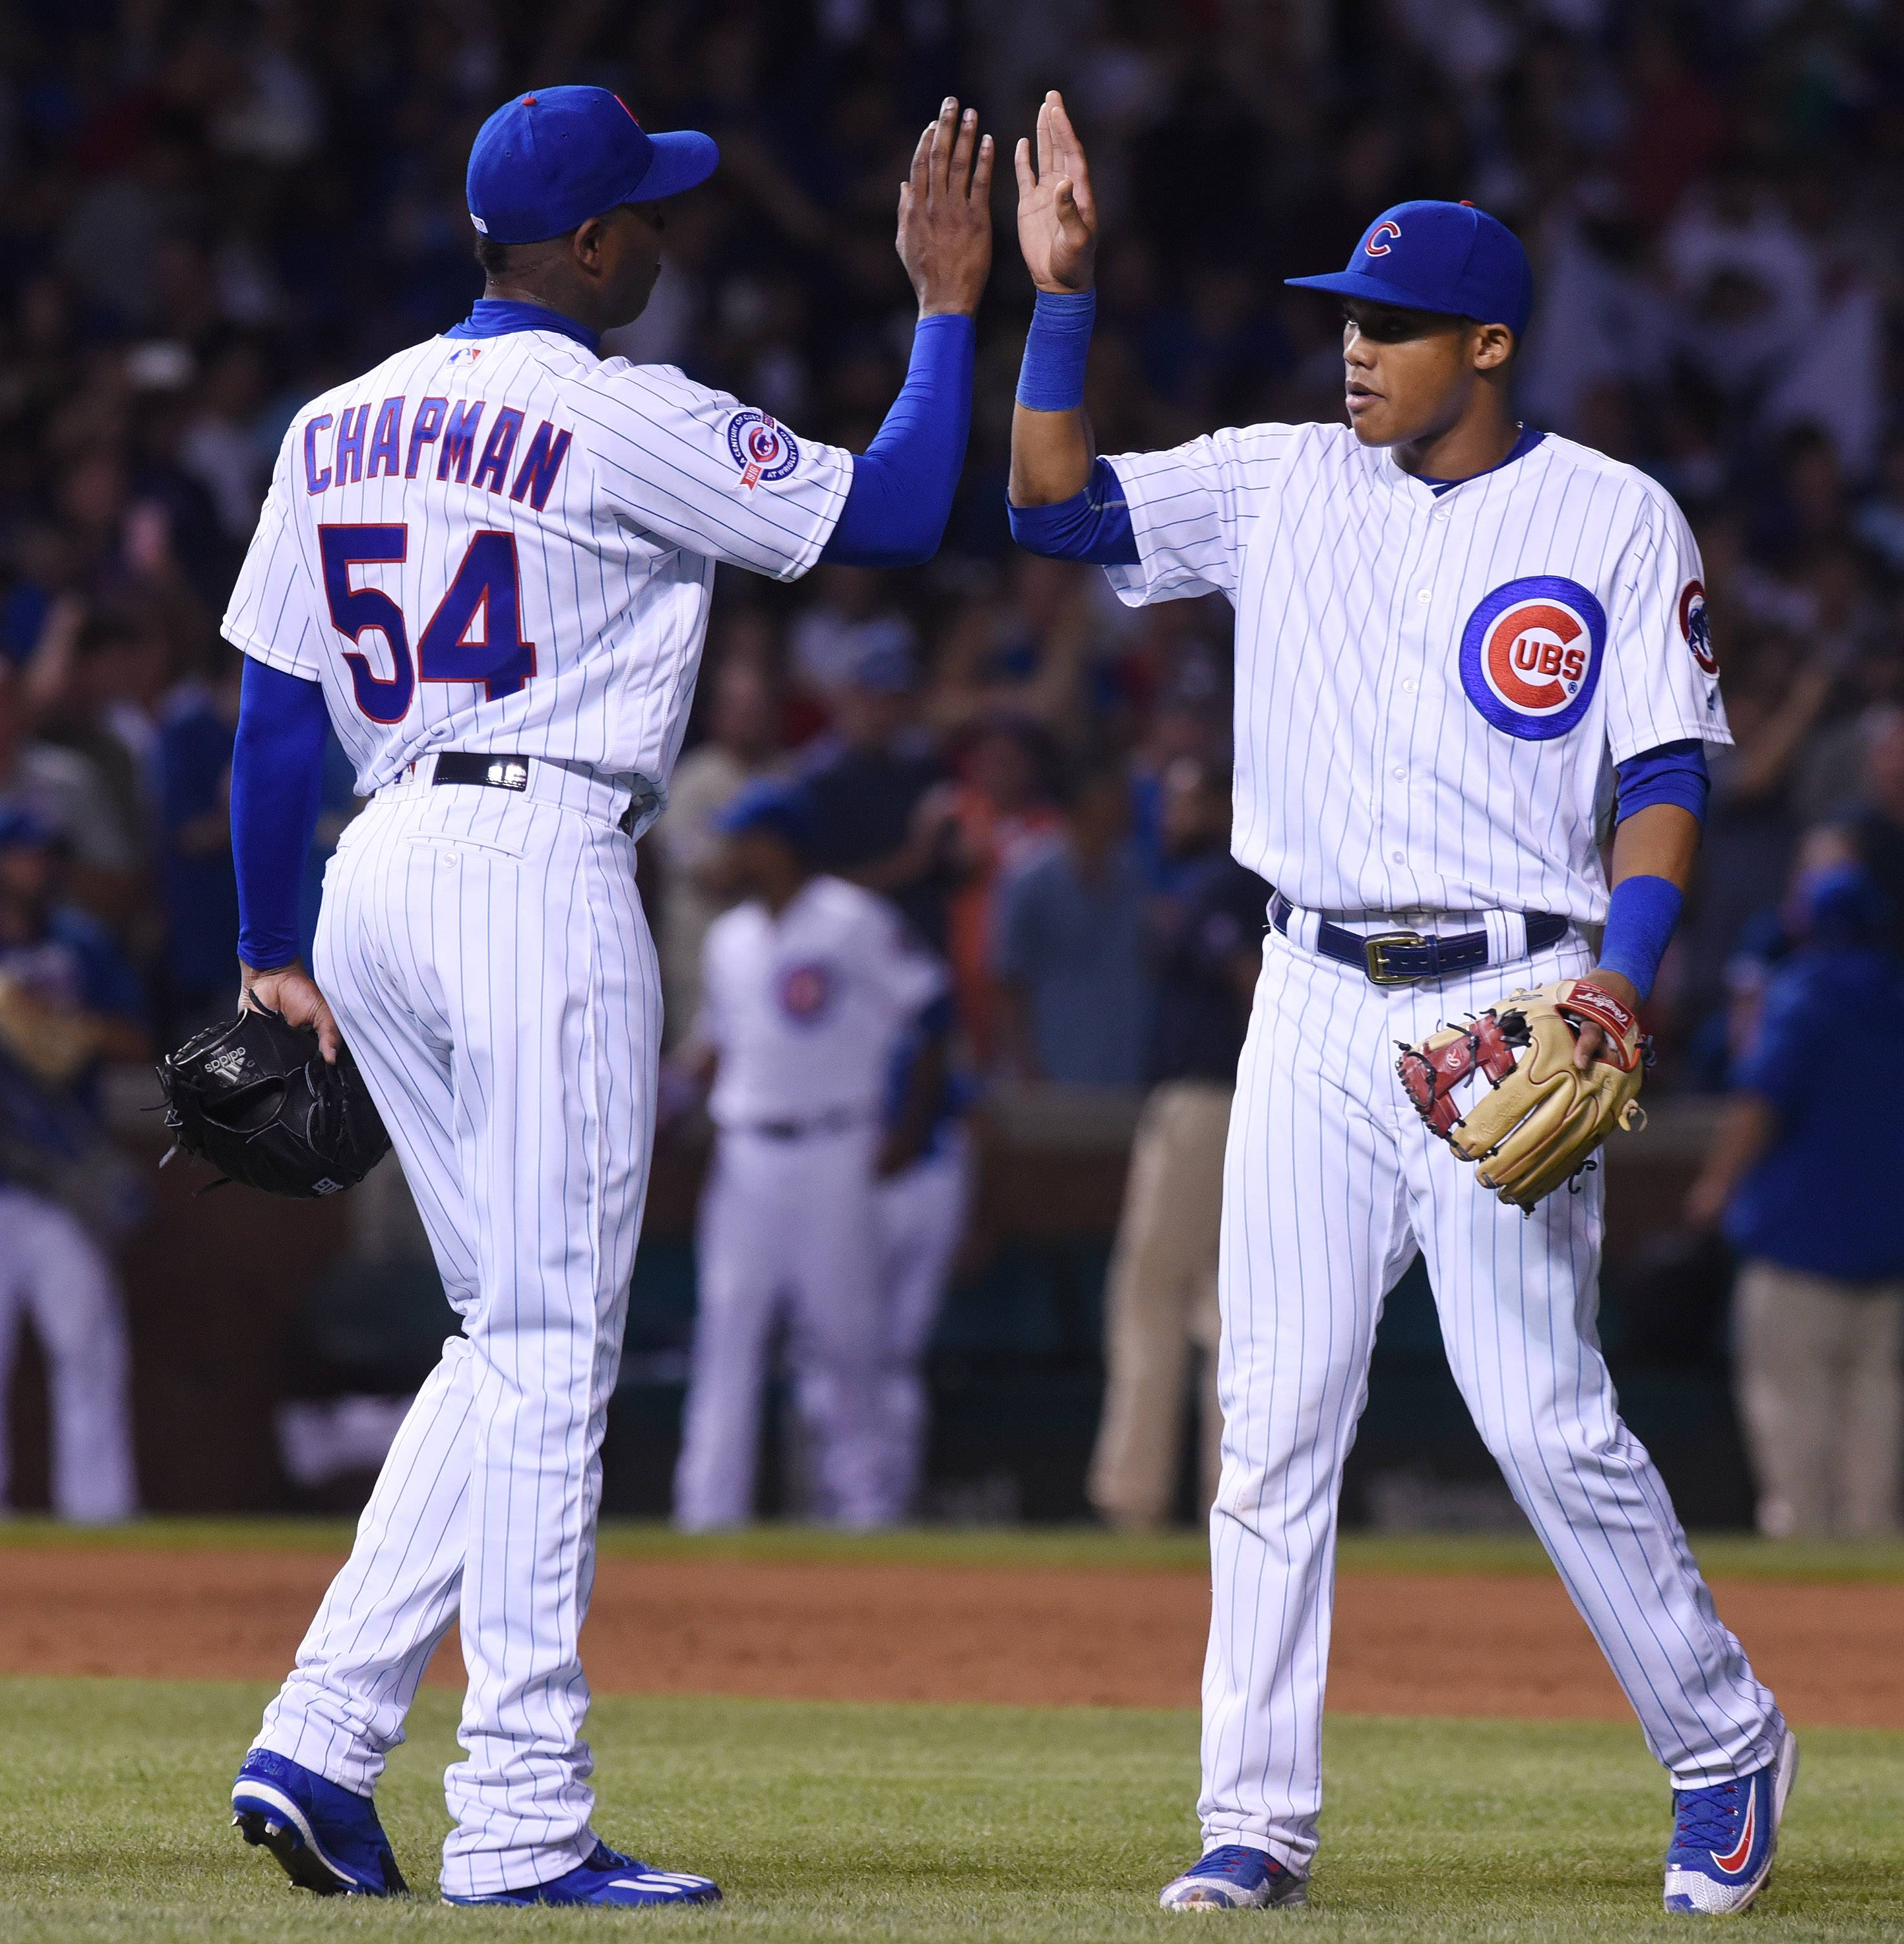 New Chicago Cubs relief pitcher Aroldis Chapman (54), left, high-fives shortstop Addison Russell following Wednesday's 8-1 victory over the White Sox at Wrigley Field in Chicago.